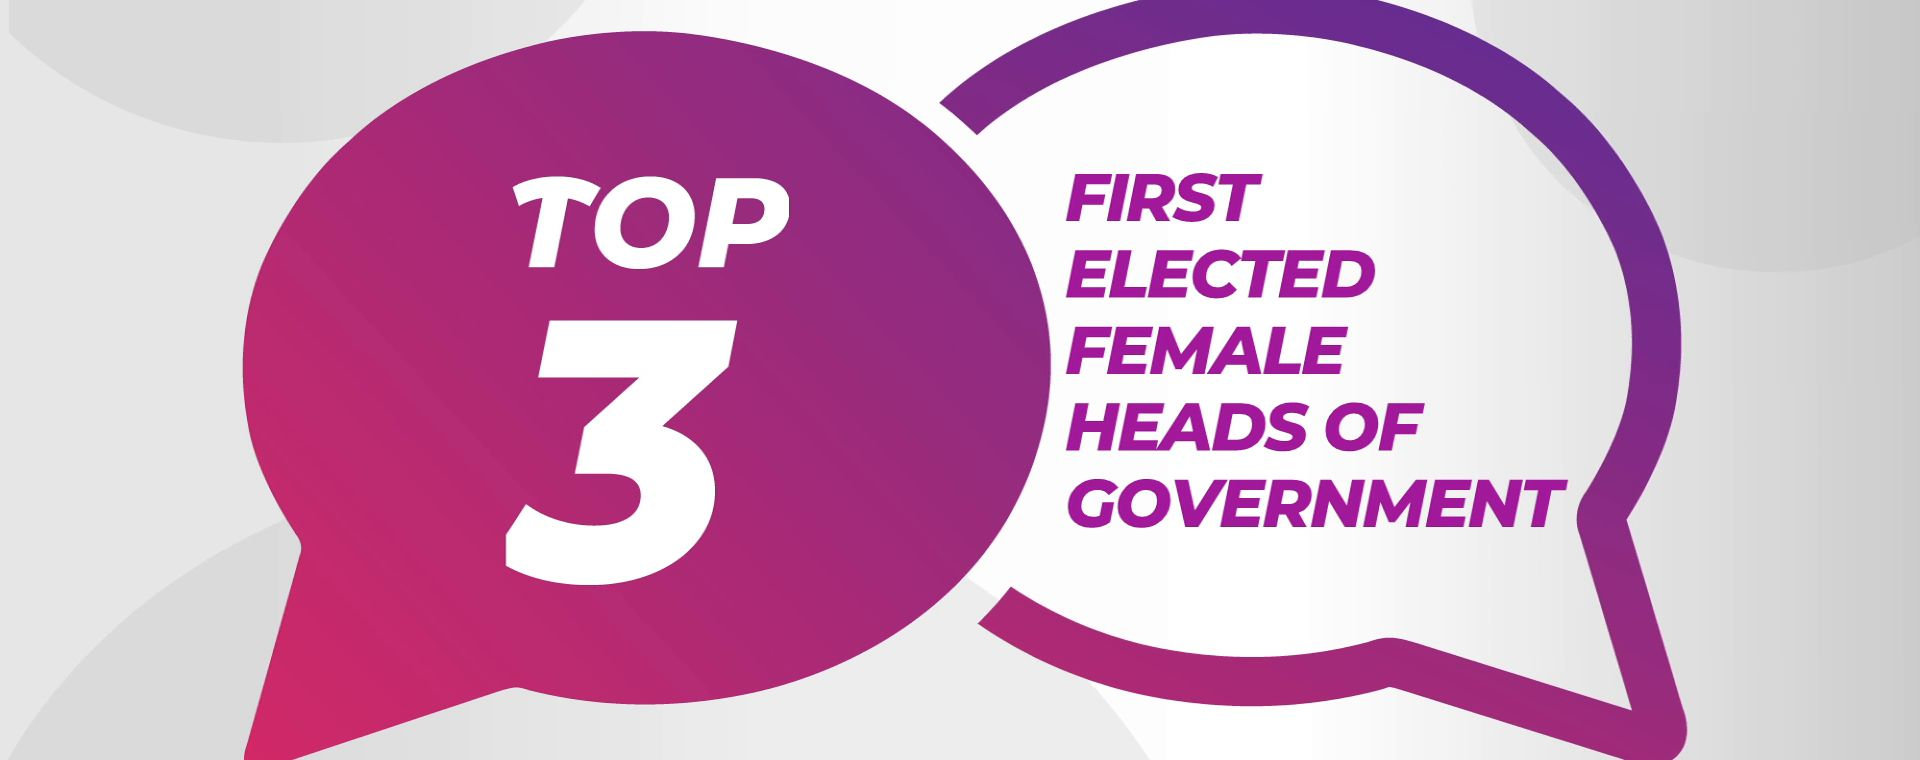 FIRST ELECTED FEMALE HEADS OF GOVERNMENT